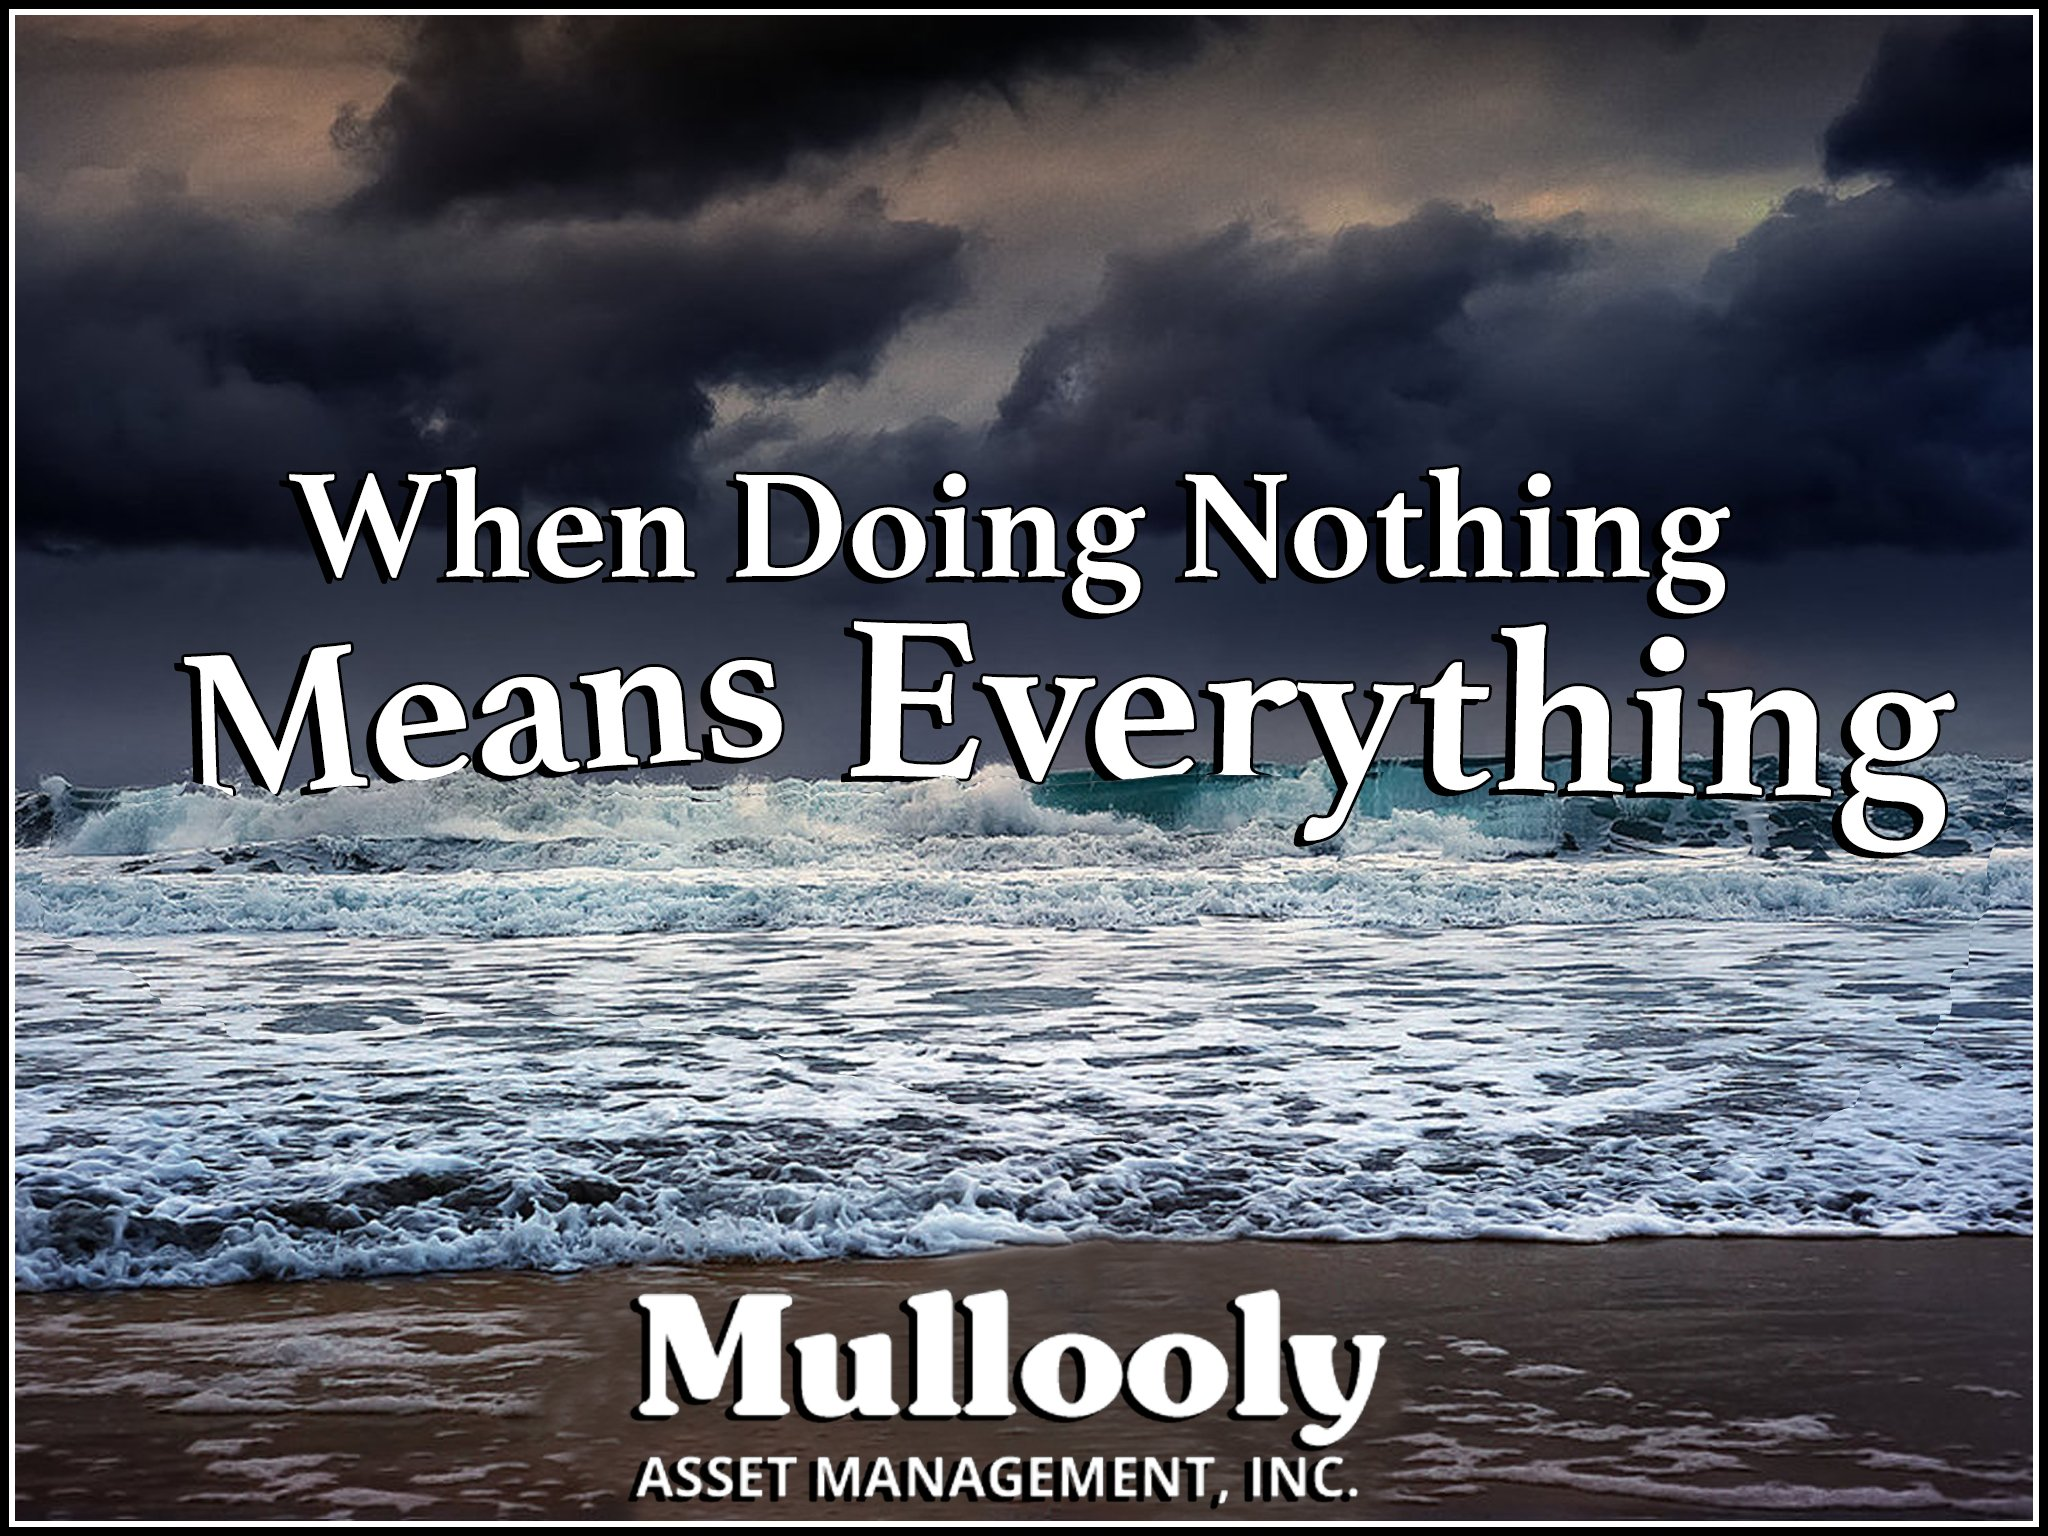 When Doing Nothing Means Everything